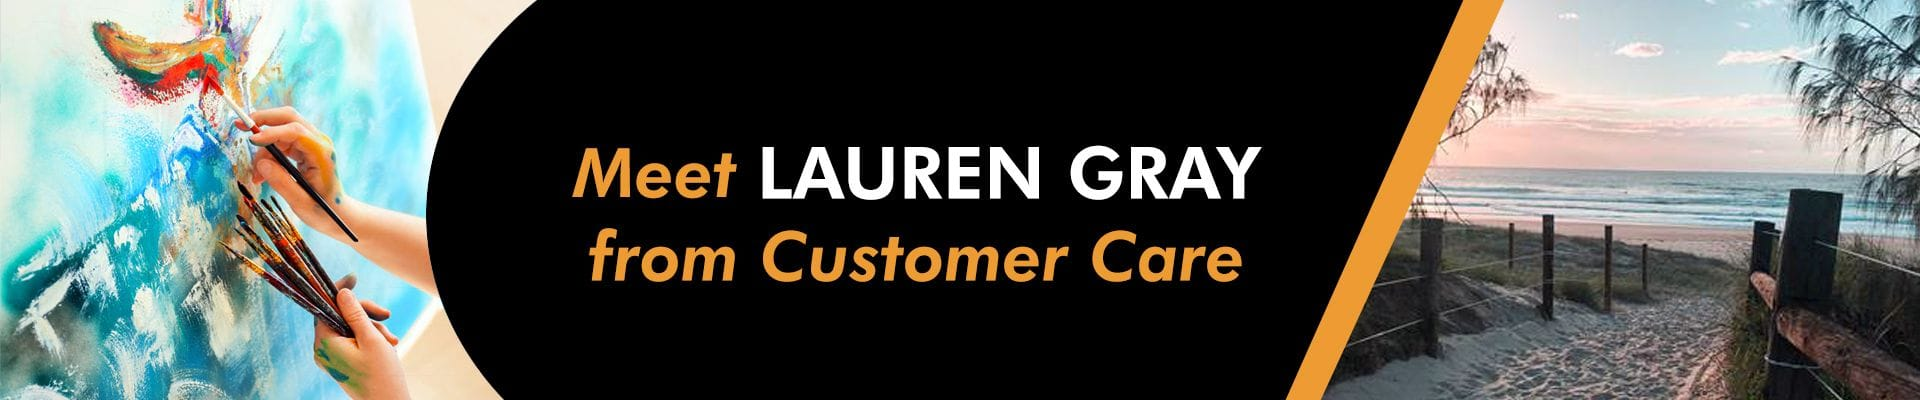 Meet LAUREN GRAY